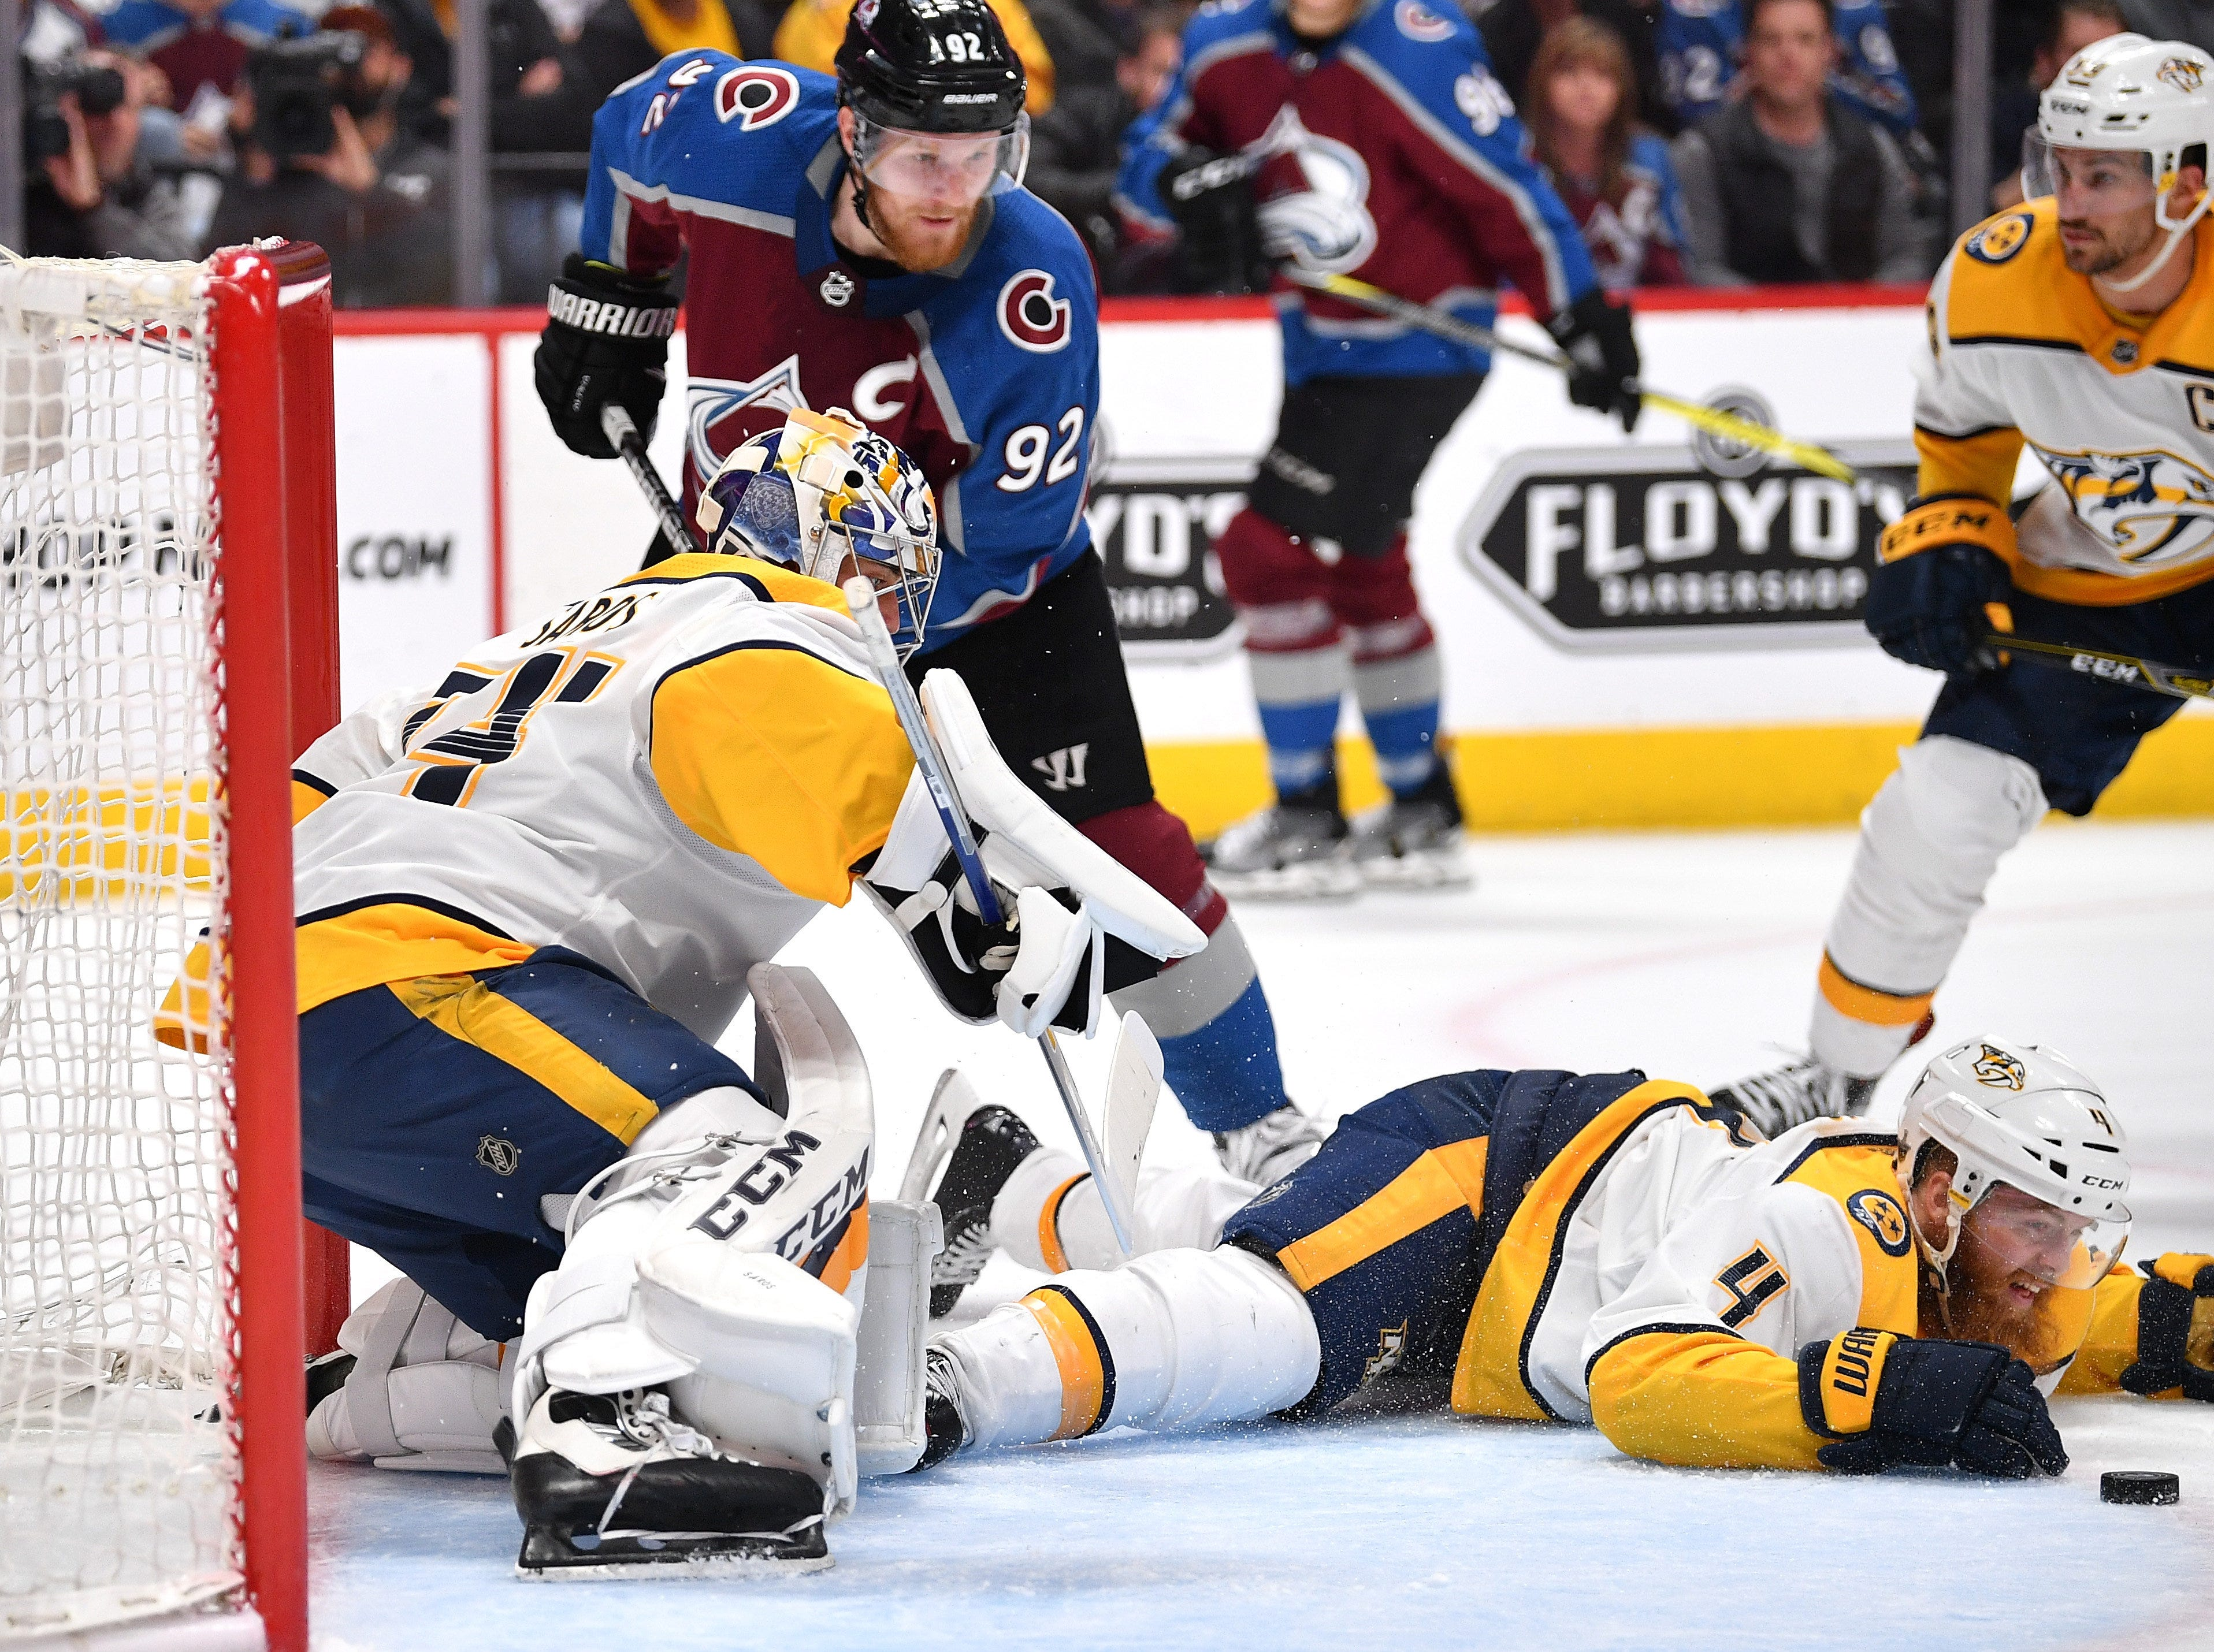 #4, Ryan Ellis, Defenseman - Nashville Predators defenseman Ryan Ellis (4) helps goaltender Juuse Saros (74) stop the puck during the second period of game 3 of the first round NHL Stanley Cup Playoffs at the Pepsi Center, Monday, April 16, 2018, in Denver, Colo.